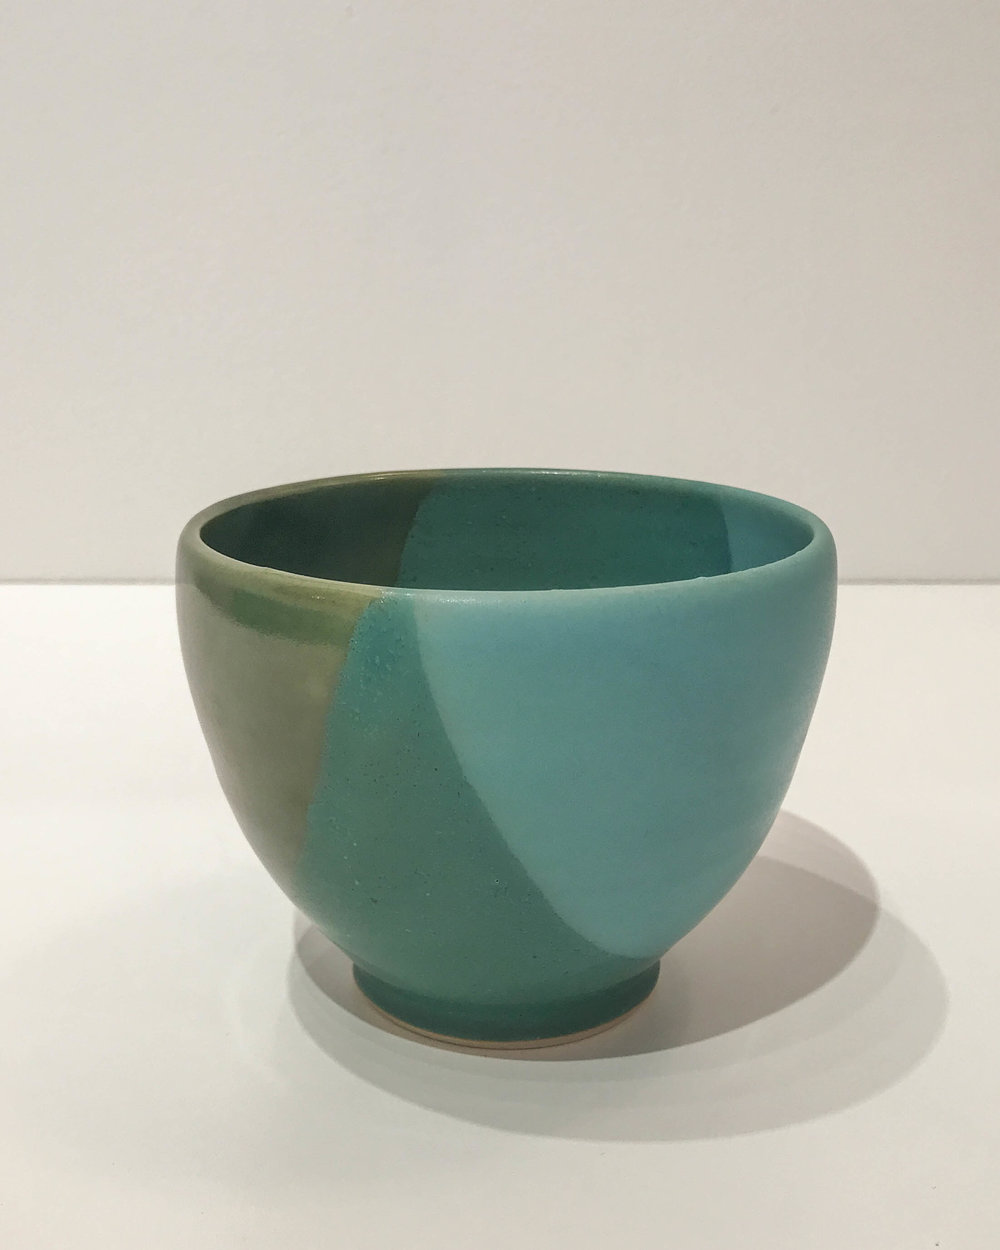 "Jennifer Crowe , small green bowl, hand-thrown stoneware, 3 1/2"" x 4 1/2"", $36"